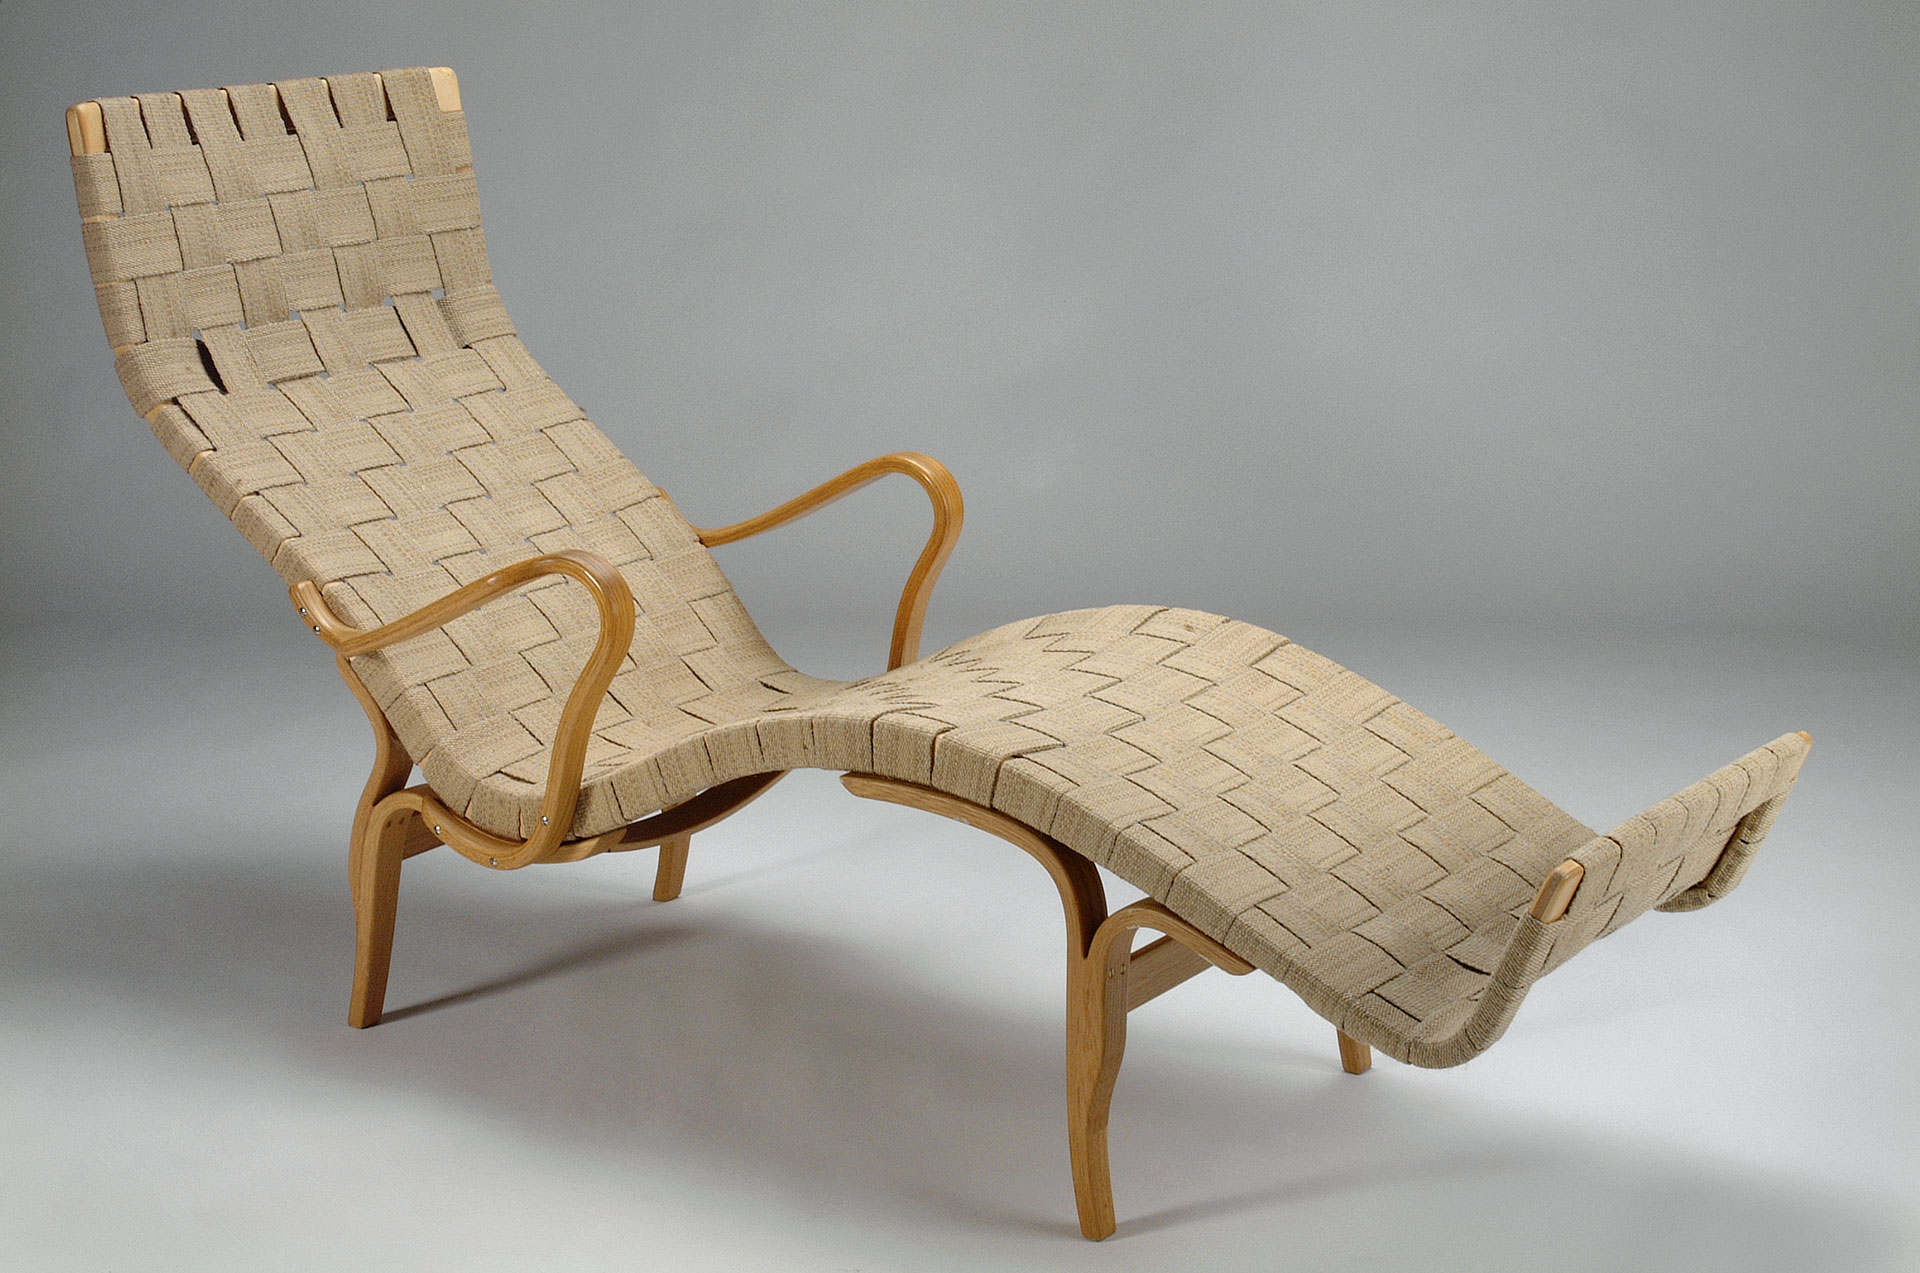 Jacksons Pernilla Iii Lounge Chair Bruno Mathsson